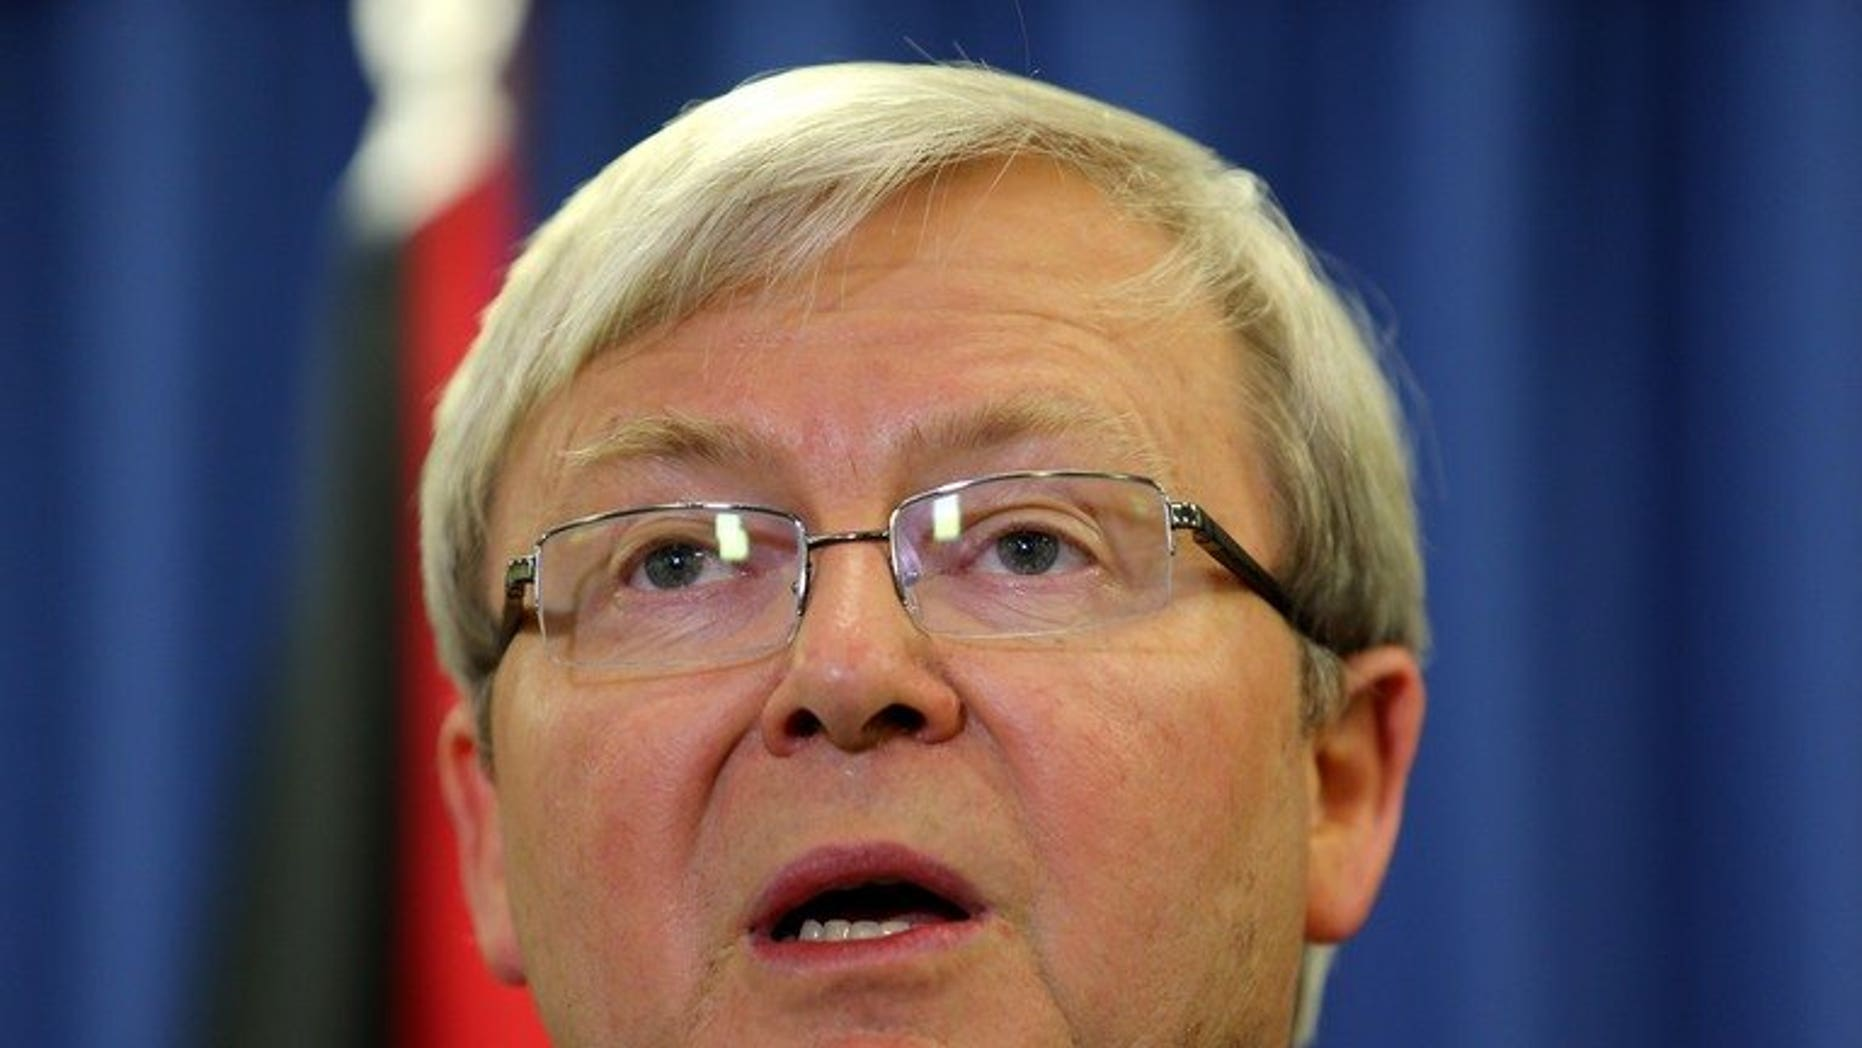 Australian Prime Minister Kevin Rudd, pictured in Brisbane, on July 19, 2013. Rudd on Saturday made a surprise visit to troops serving in Afghanistan, telling them that it was time they came home.